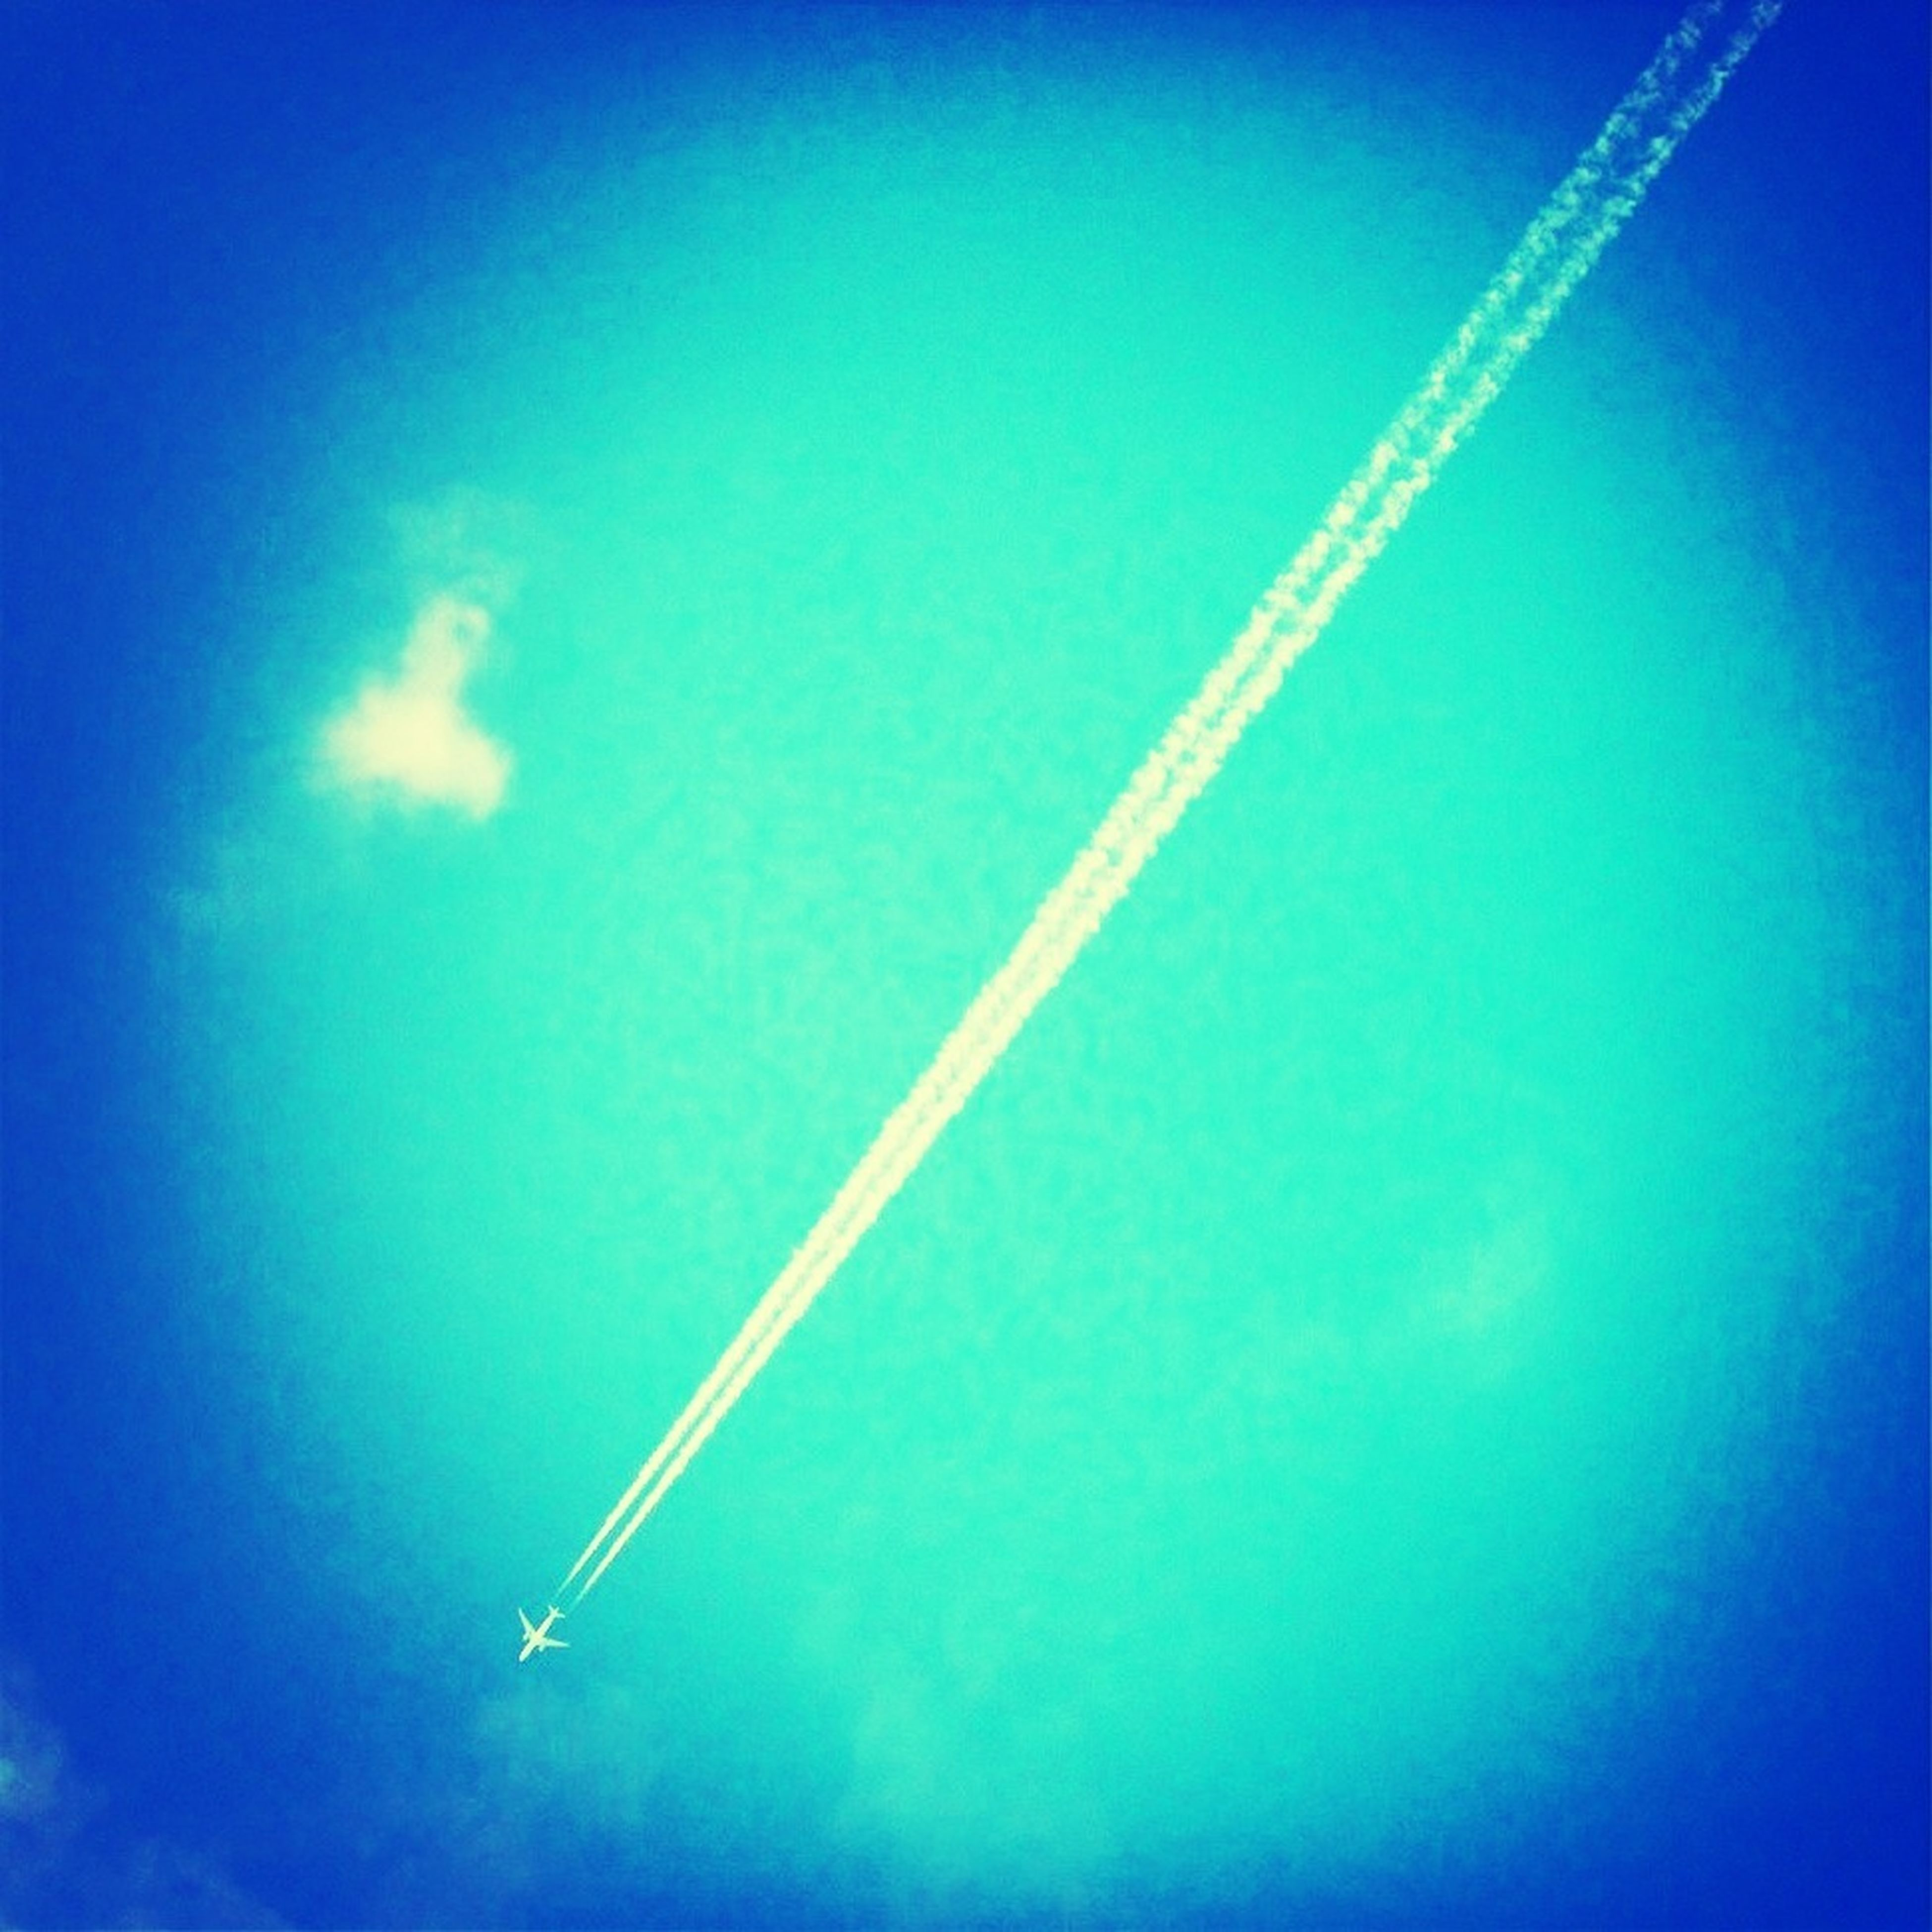 blue, low angle view, flying, vapor trail, transportation, airplane, air vehicle, sky, mode of transport, mid-air, clear sky, copy space, nature, outdoors, no people, on the move, beauty in nature, scenics, travel, day